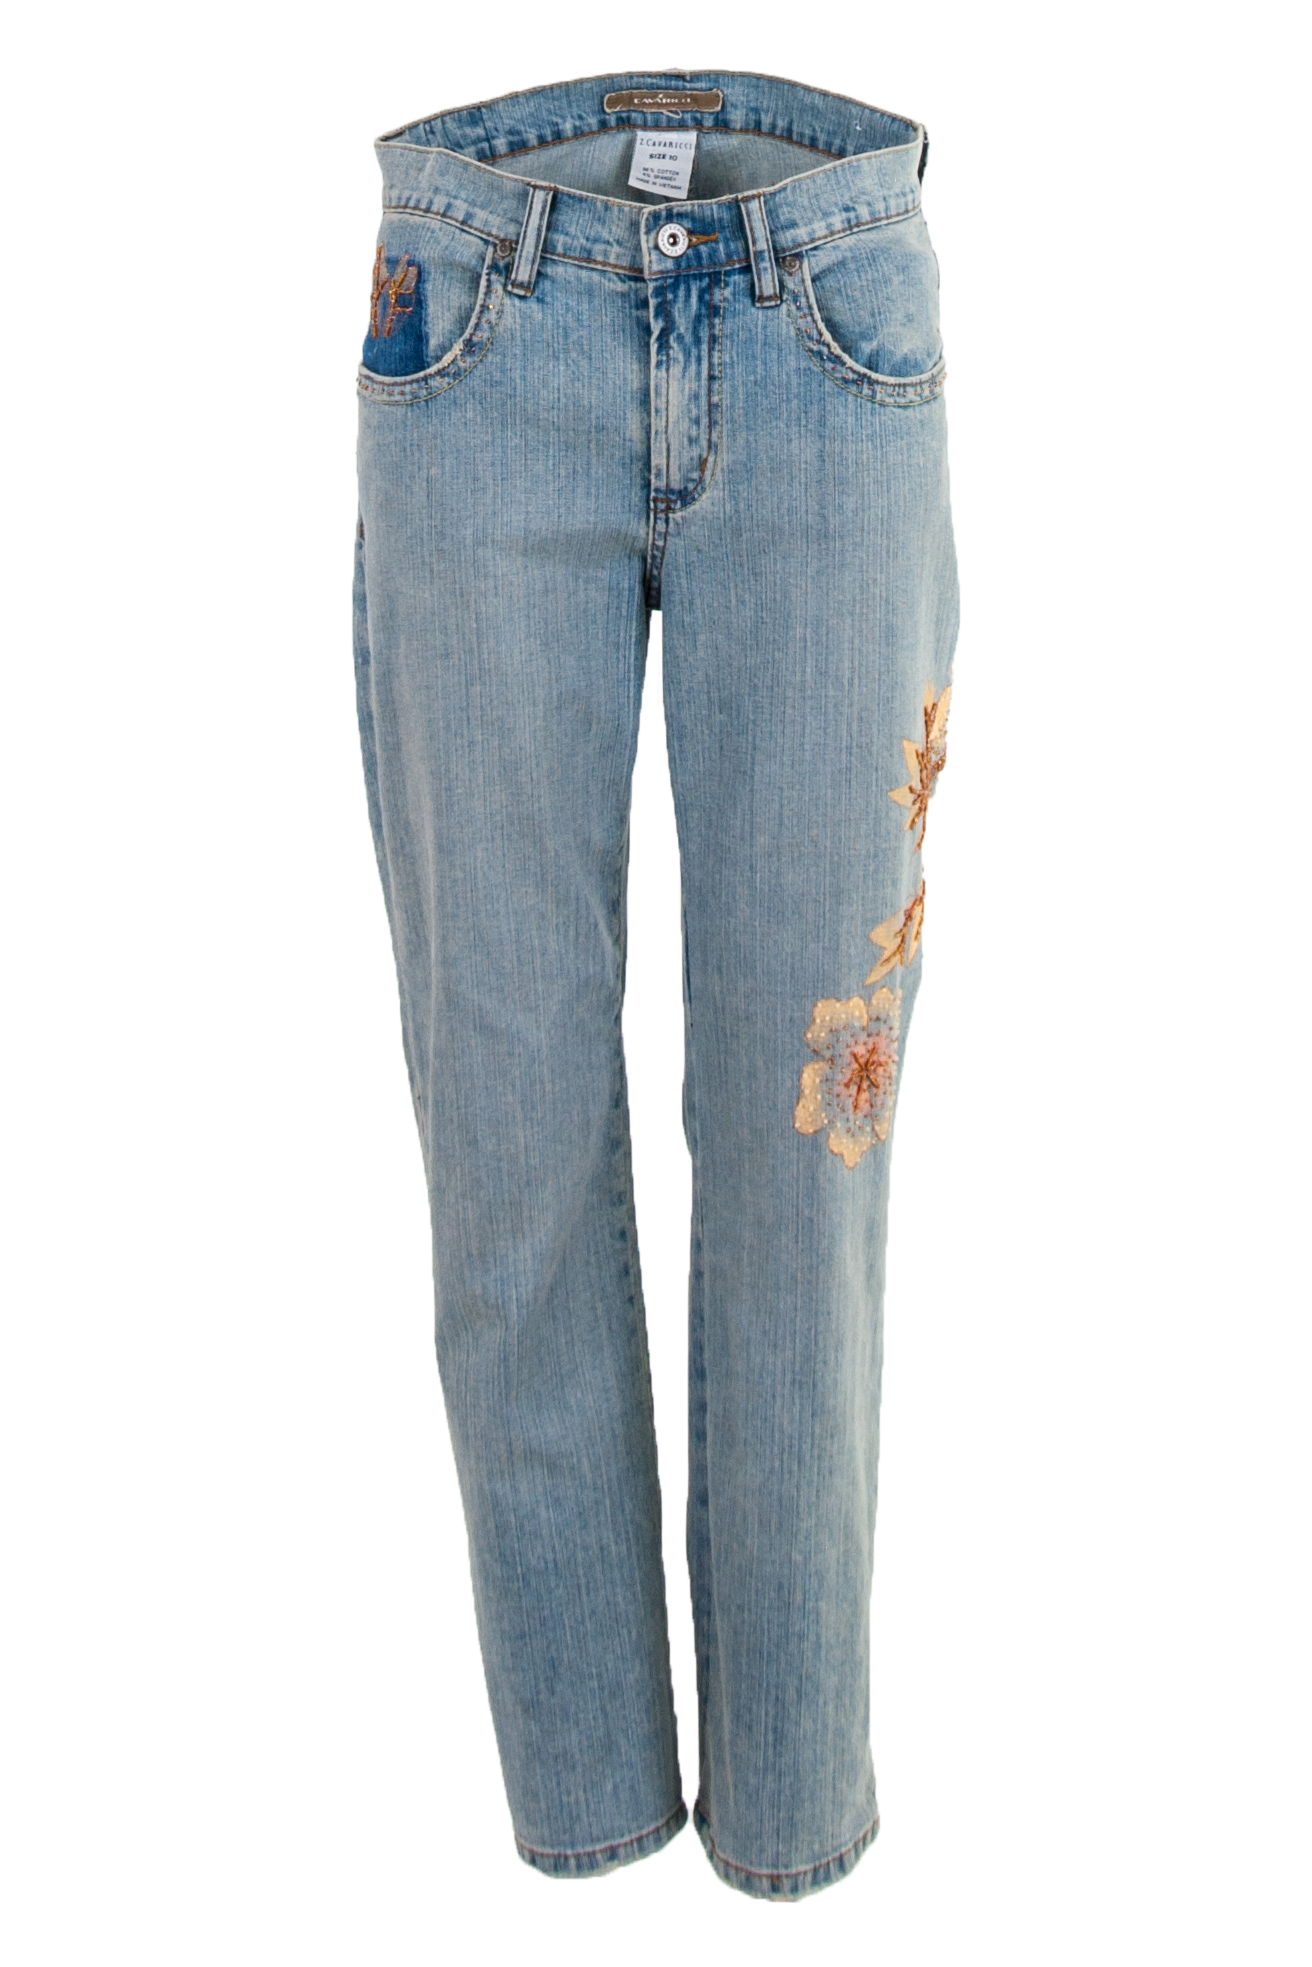 vintage blue jeans with painted flowers